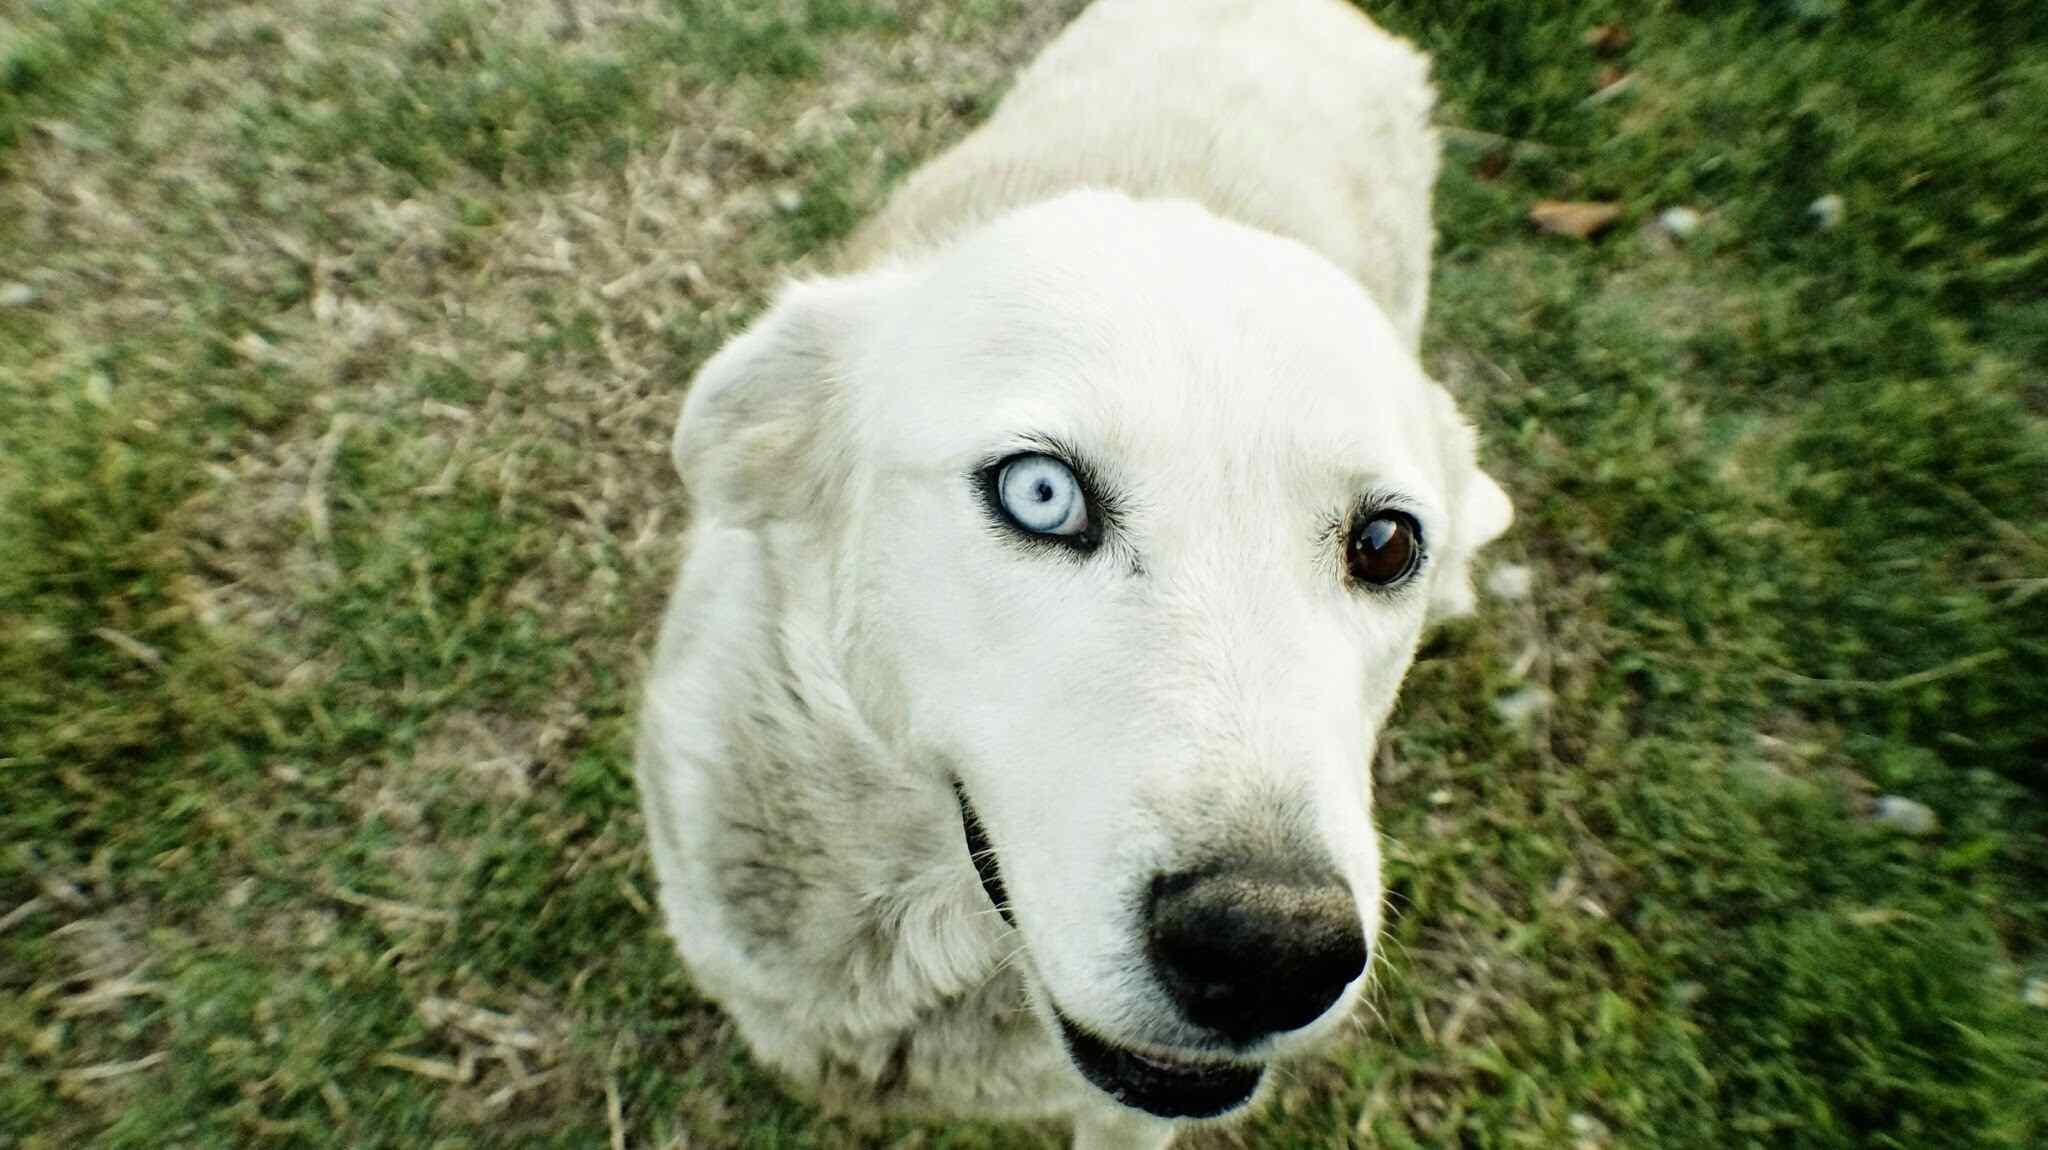 Close-up portrait of white dog standing in a field